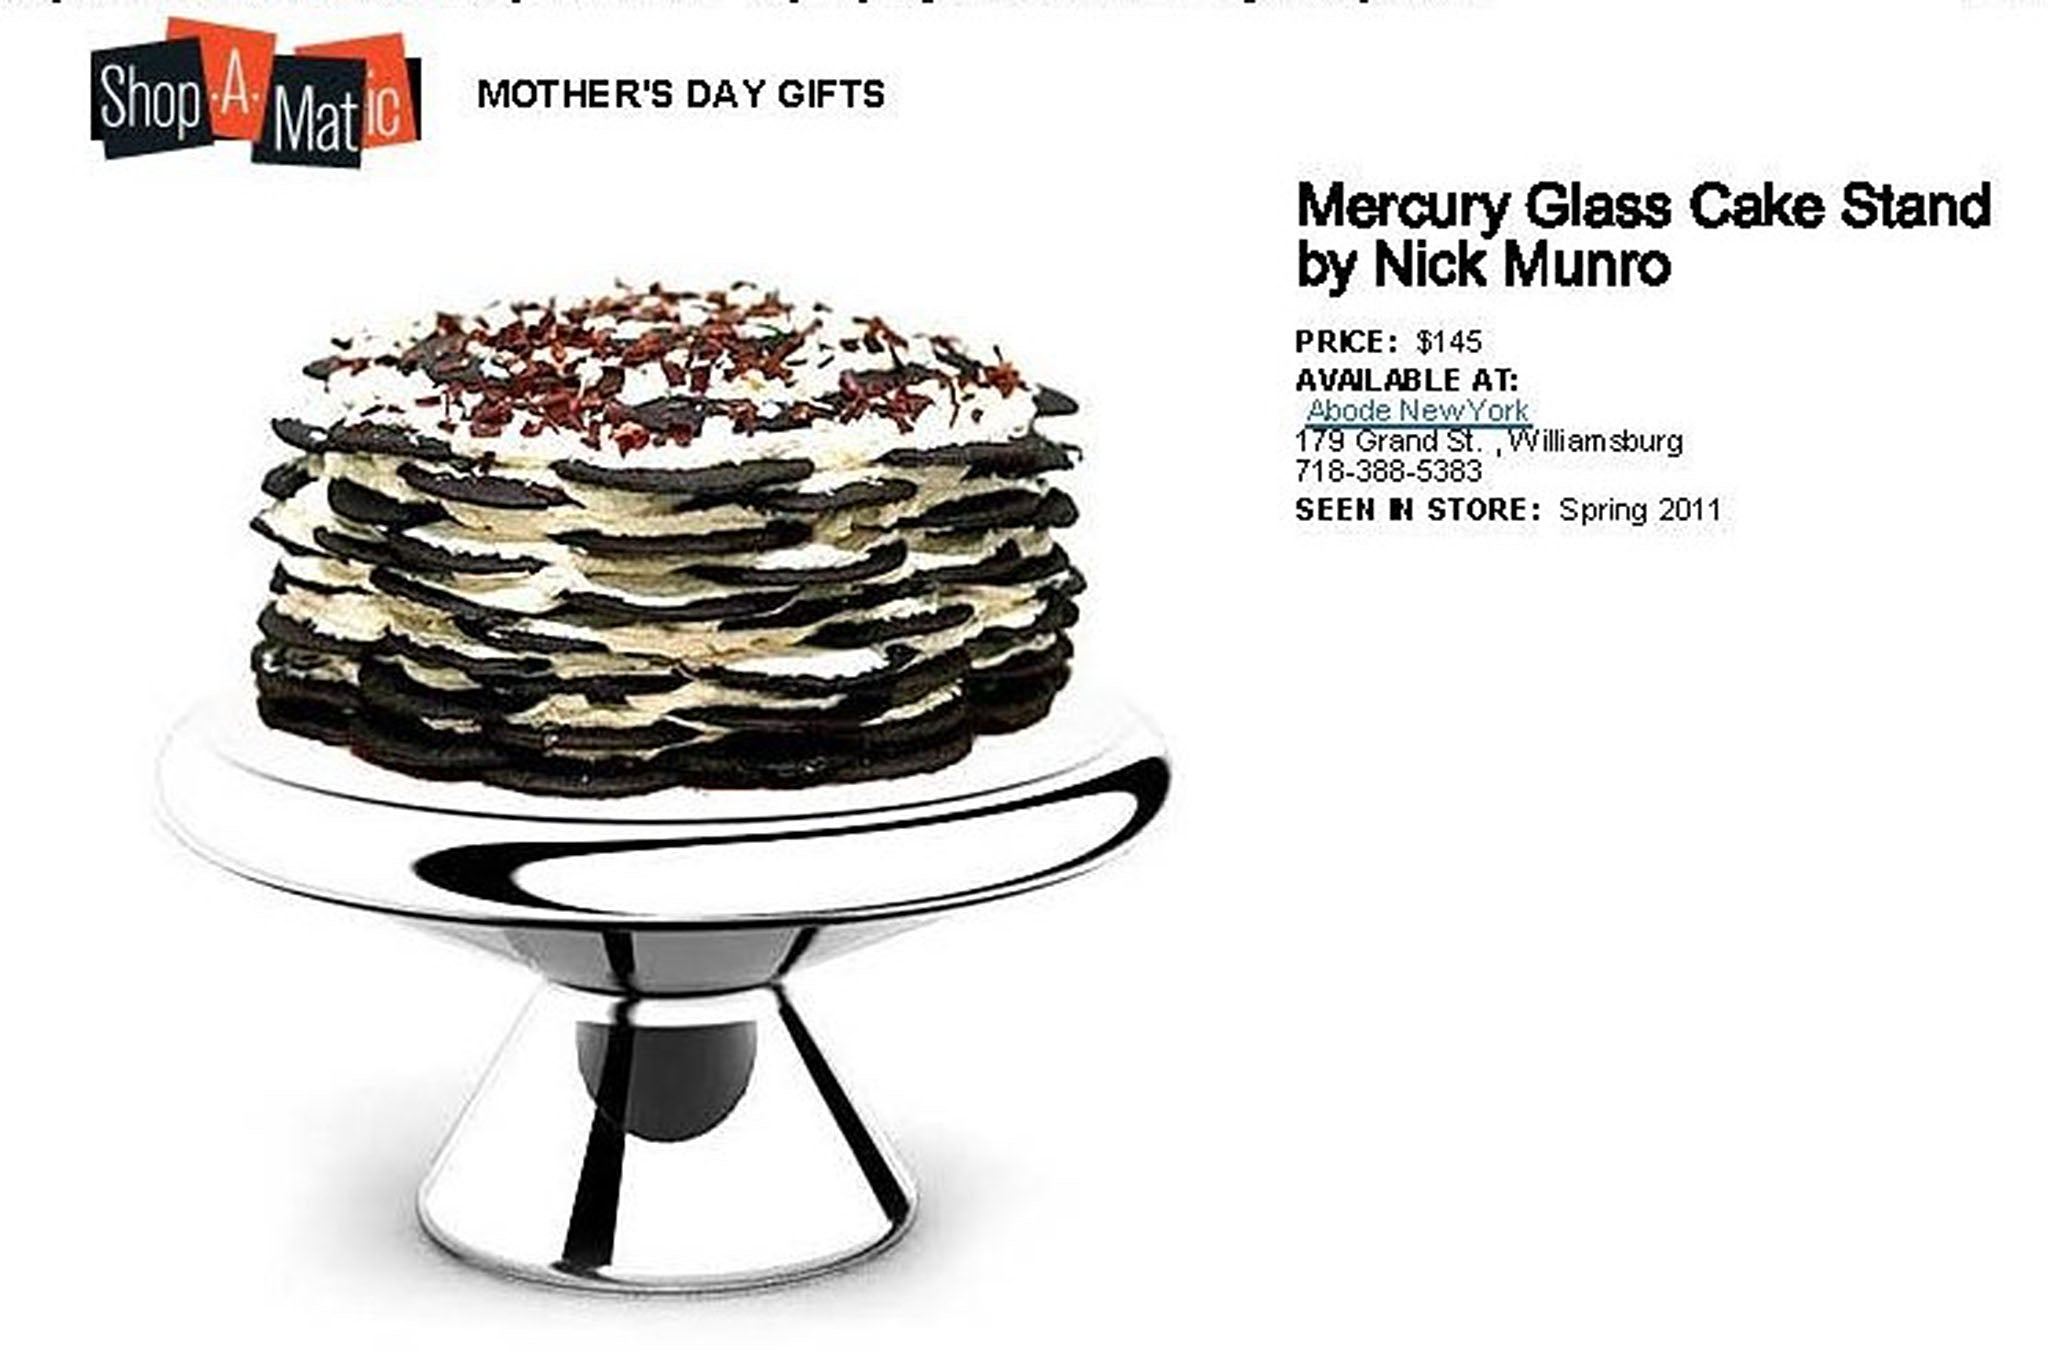 New York Magazine, Shop-a-Matic 2011 Mother's Day Gift Guide: Captains of Industry apron by Hellman & Billings, Nouma Salt & Pepper shakers by Ceramik B and Marla Dawn's Two for Tea teapot set and Nick Munro's Mercury Glass Cake Stand, April 30, 2011.